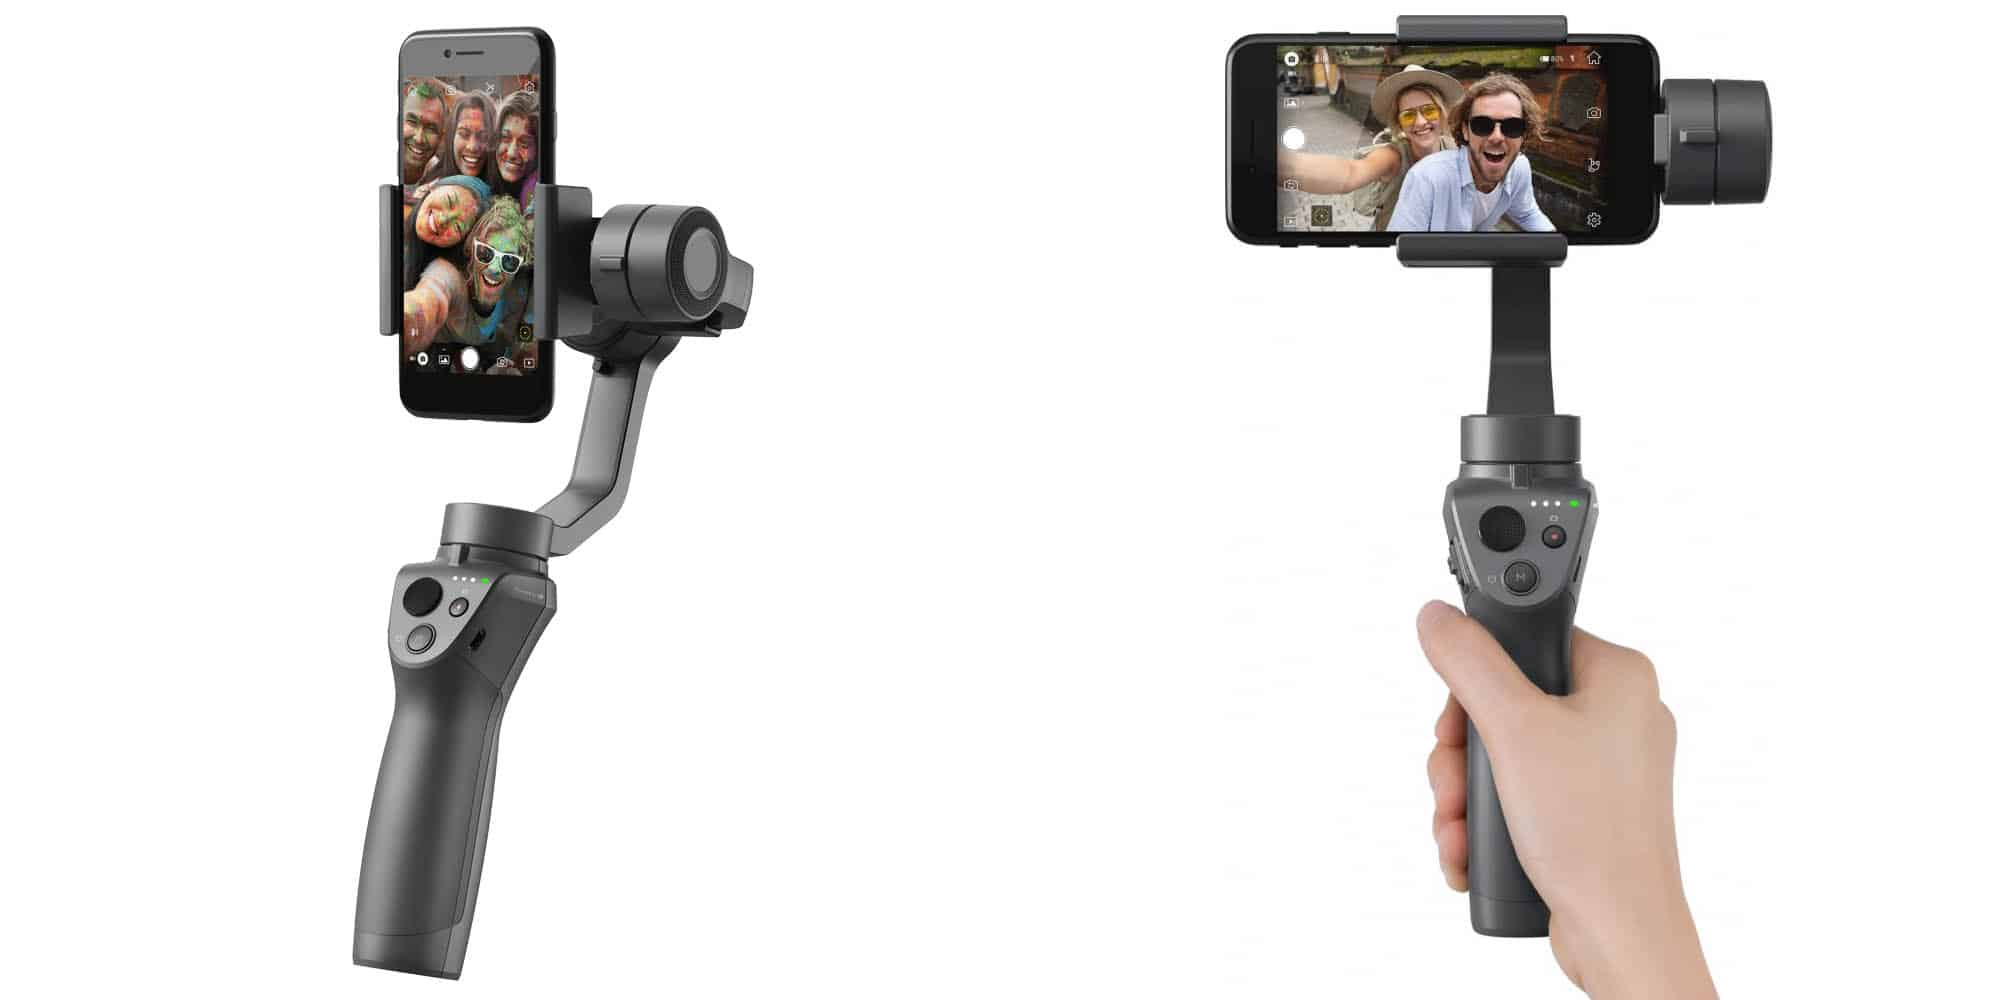 featured image for the dji osmo mobile 2 review